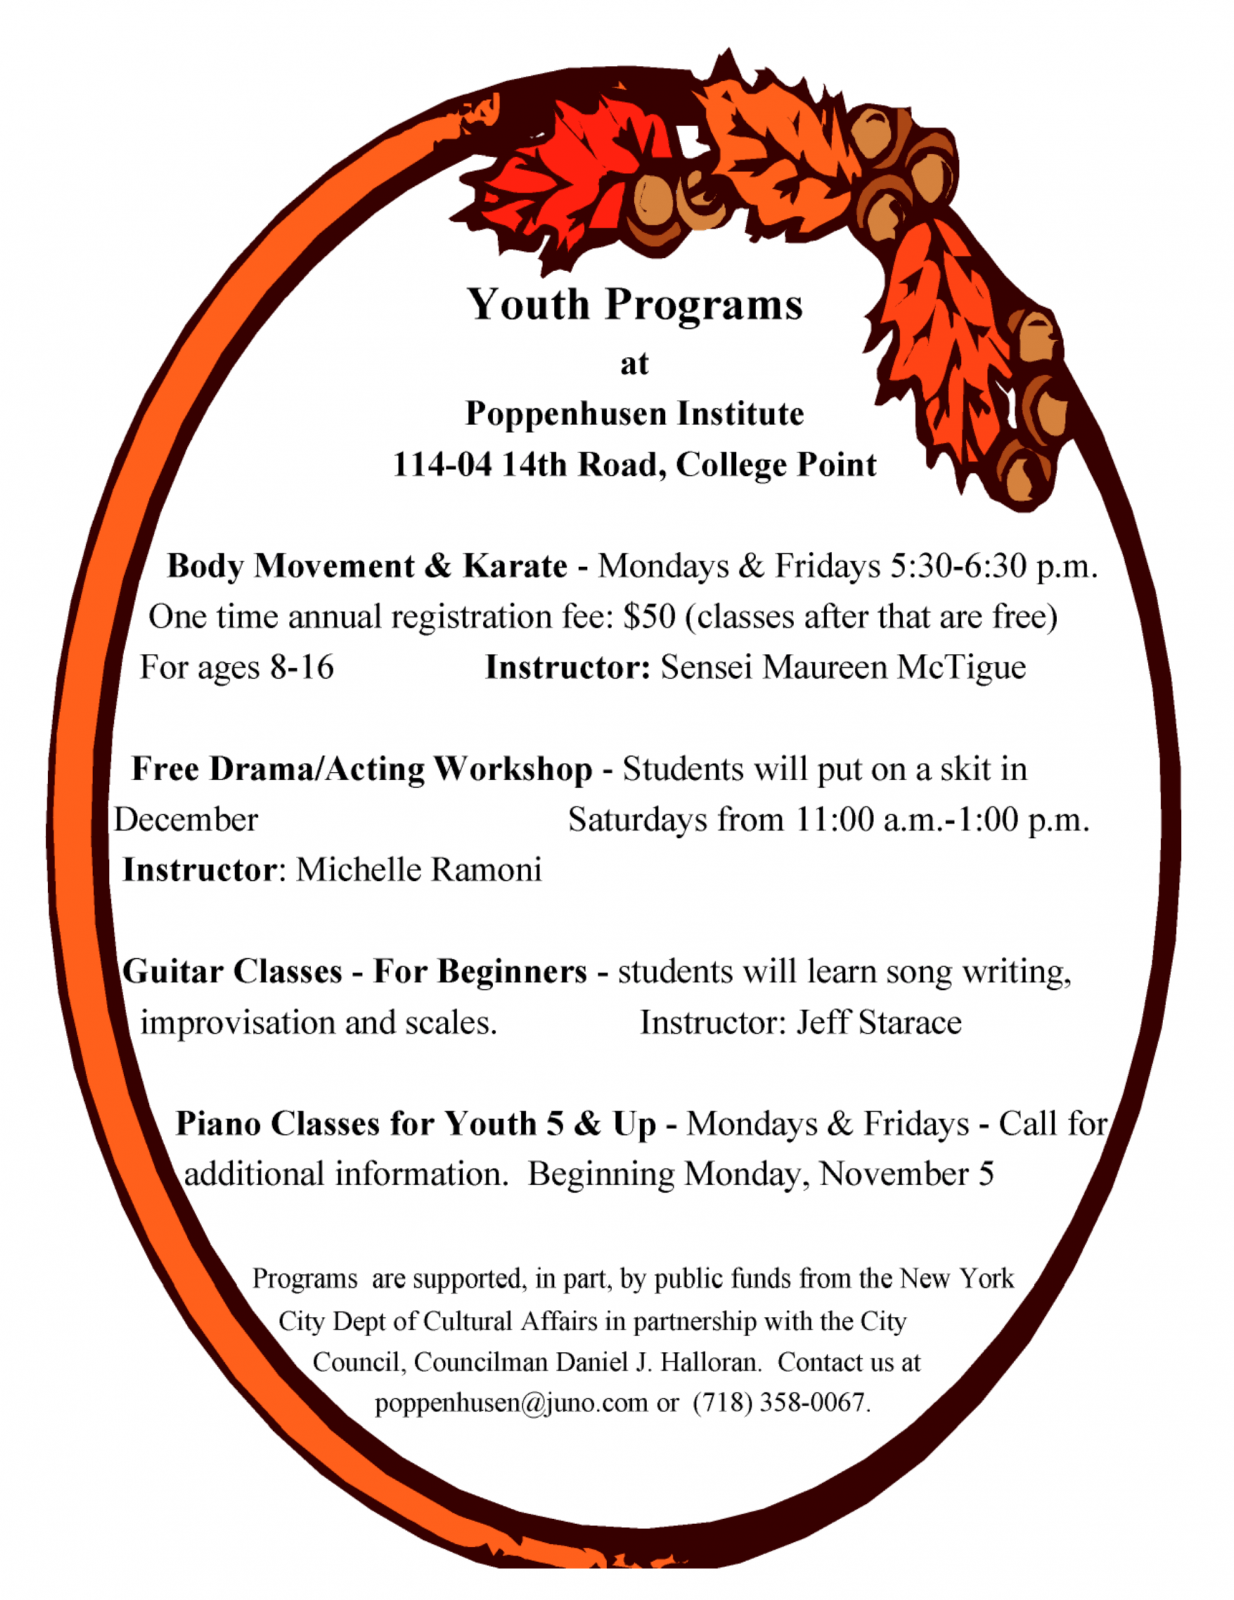 Youth Programs at Poppenhusen Institute Chart